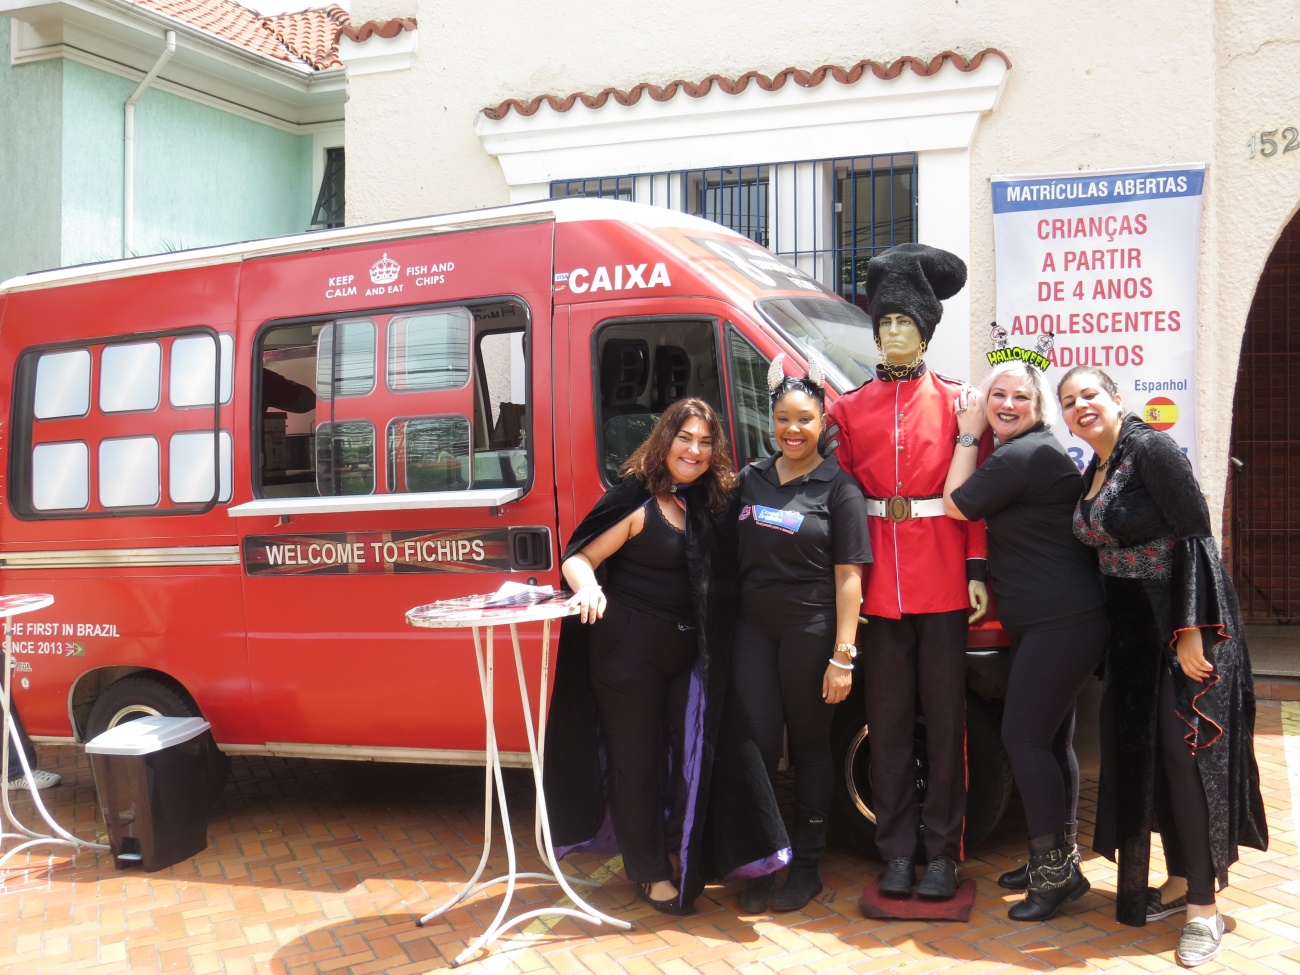 Food Truck Outubro 2015